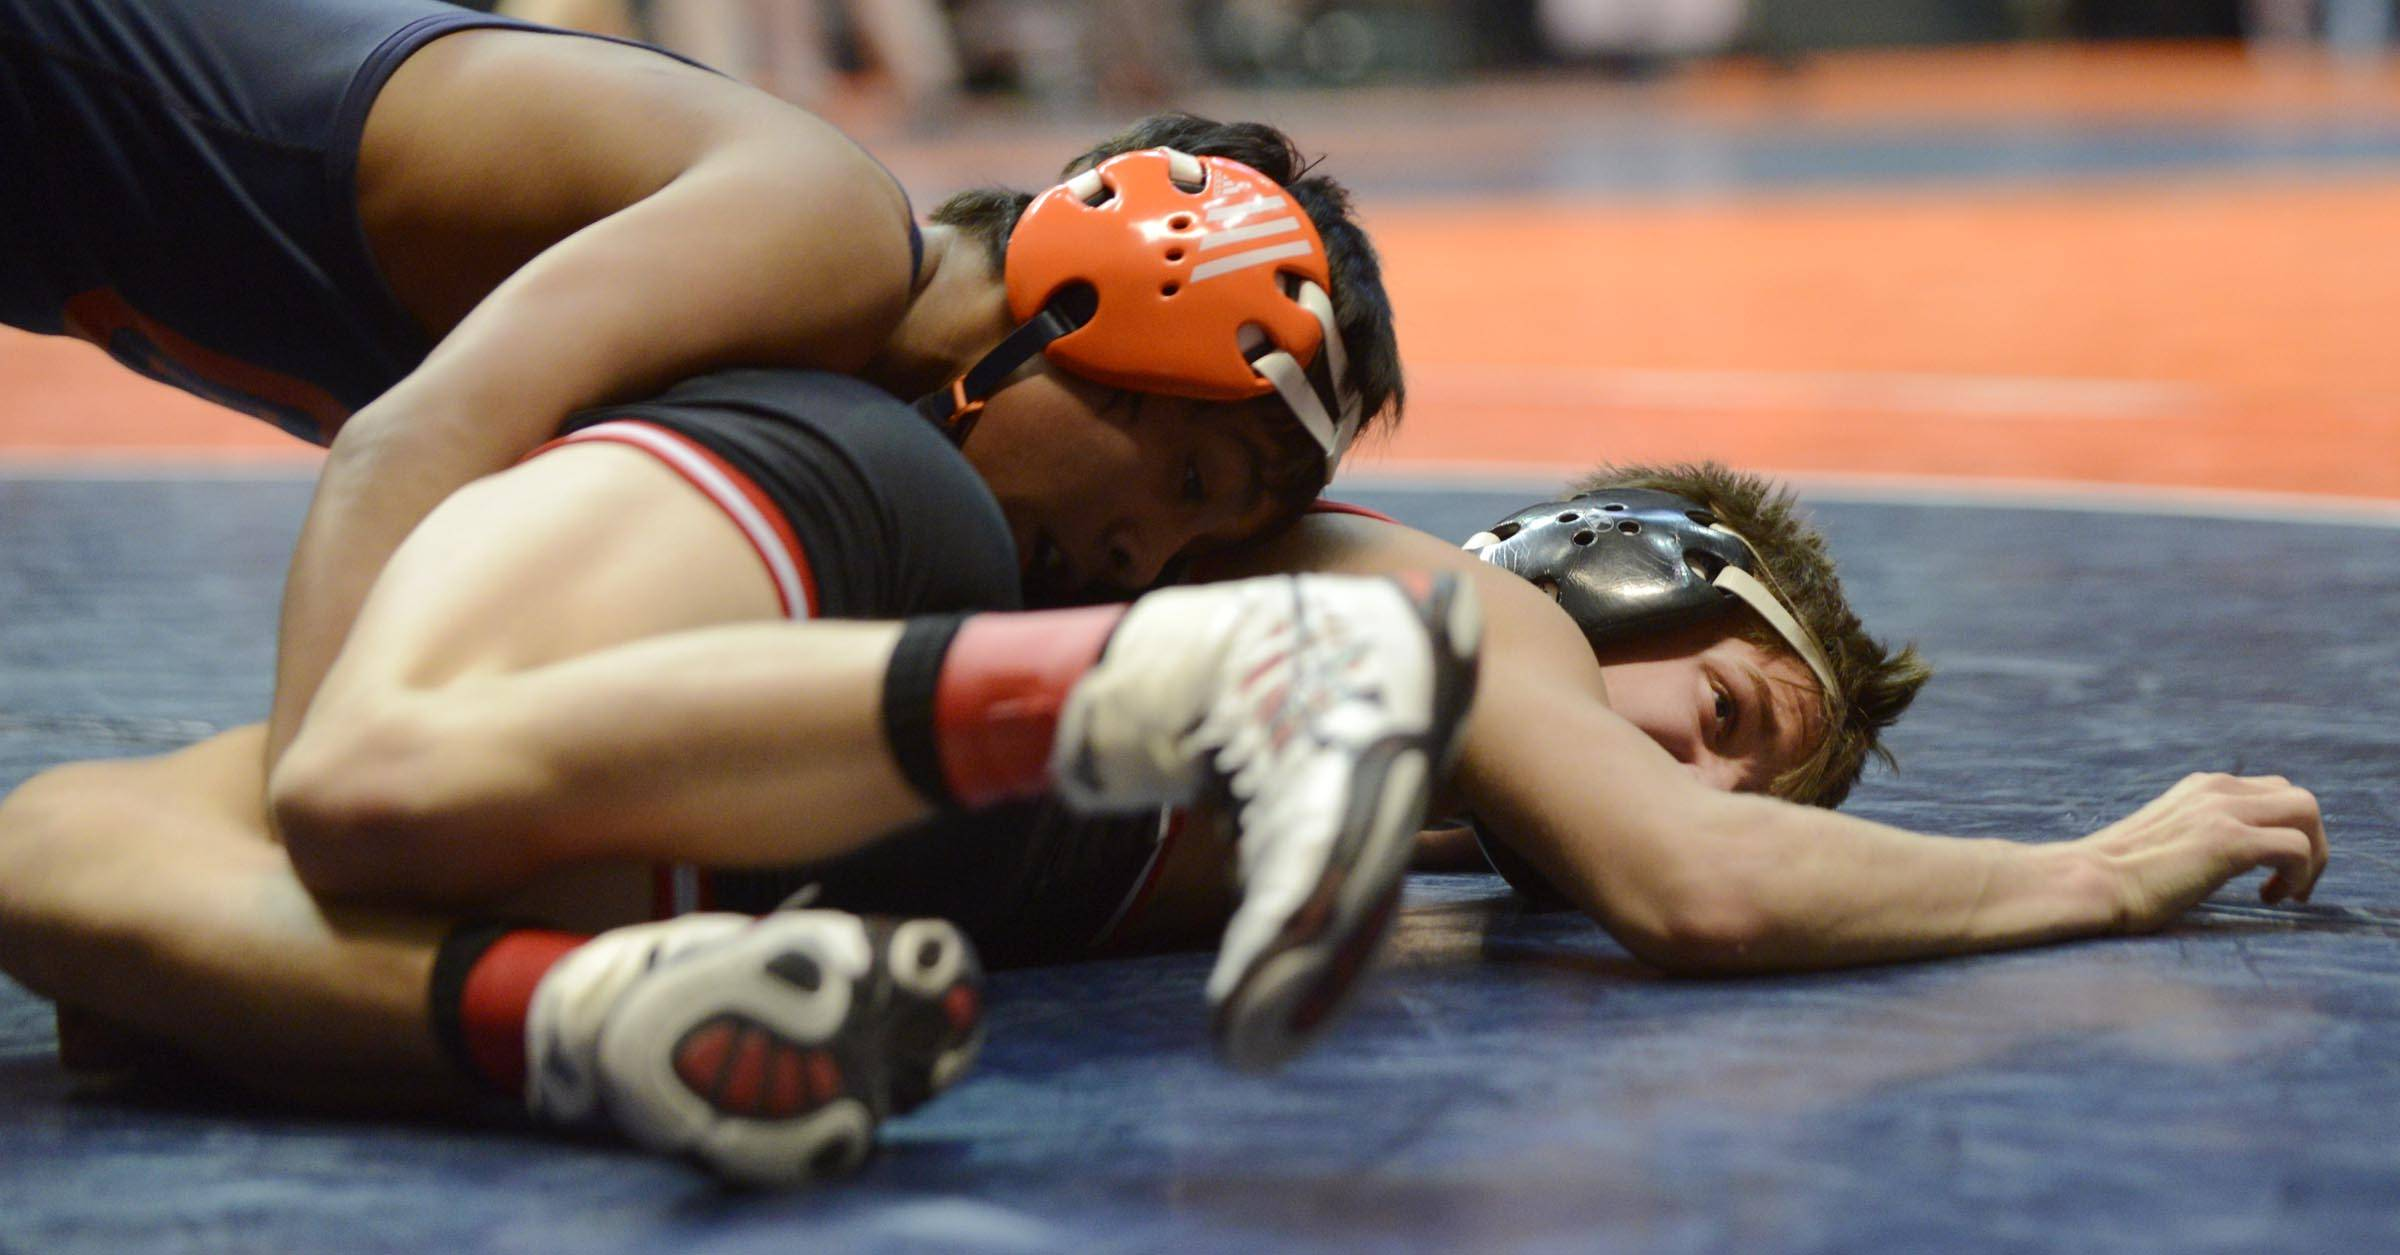 Mitch Stathakis of Barrington High School competes Friday against Jason Renteria of Oak Park River Forest in the 106-pound weight class semifinals of the wrestling IHSA Class 3A state tournament at State Farm Center in Champaign.